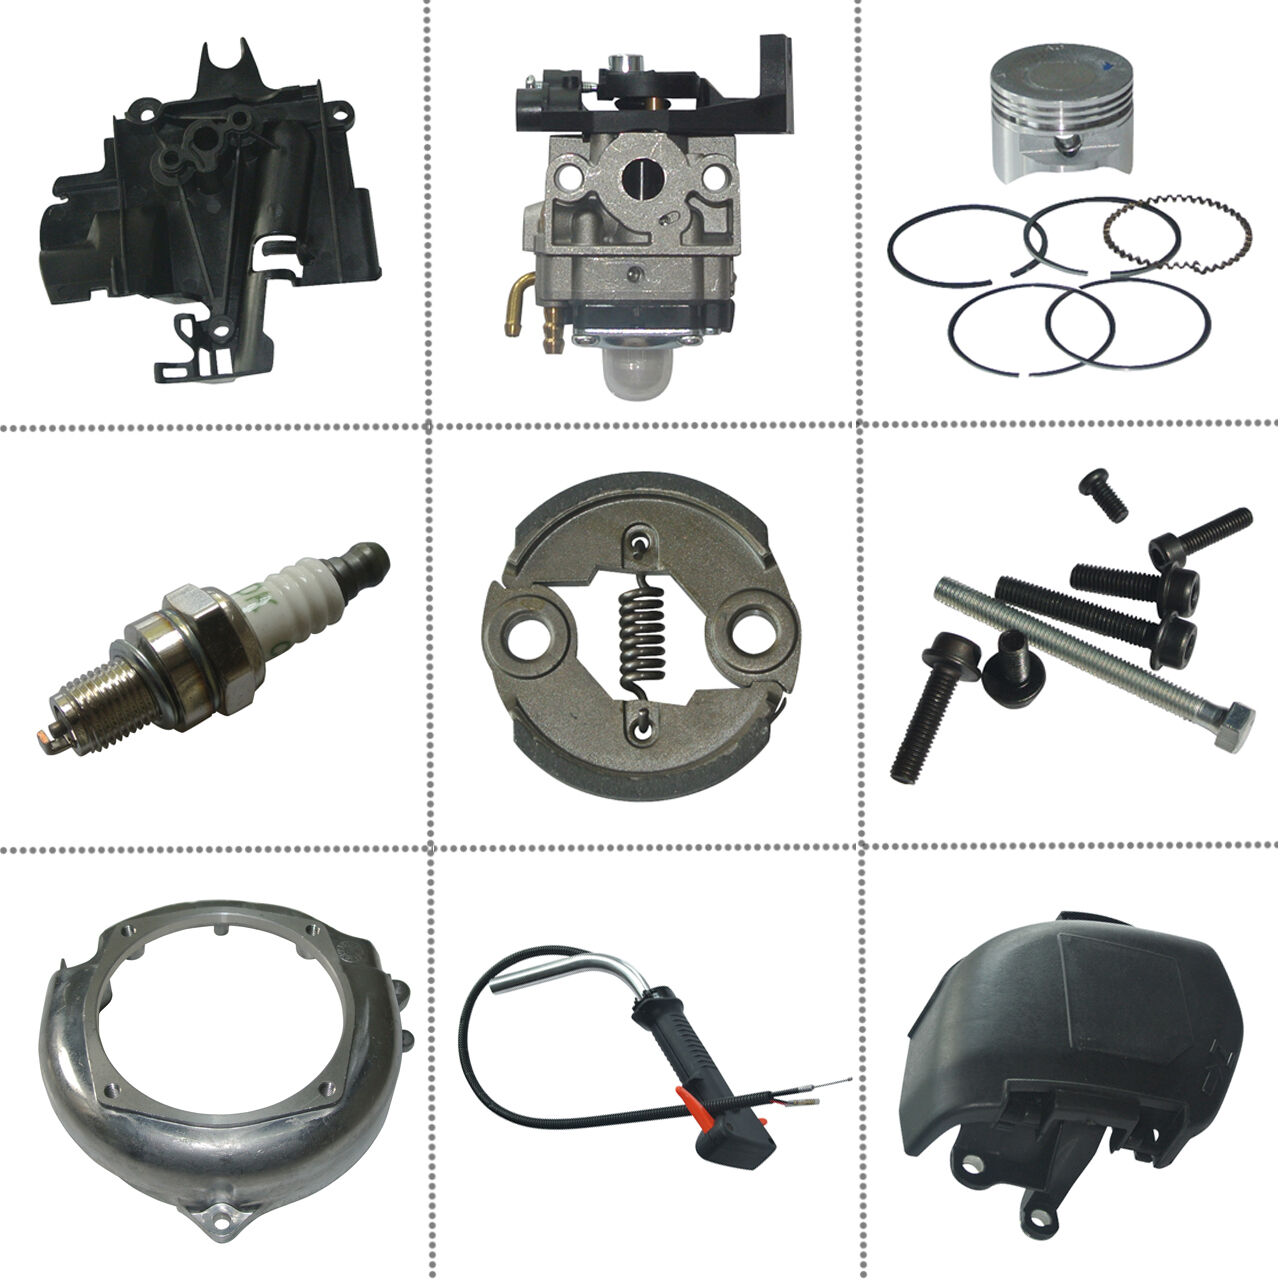 Honda Motorcycle Replacement Parts